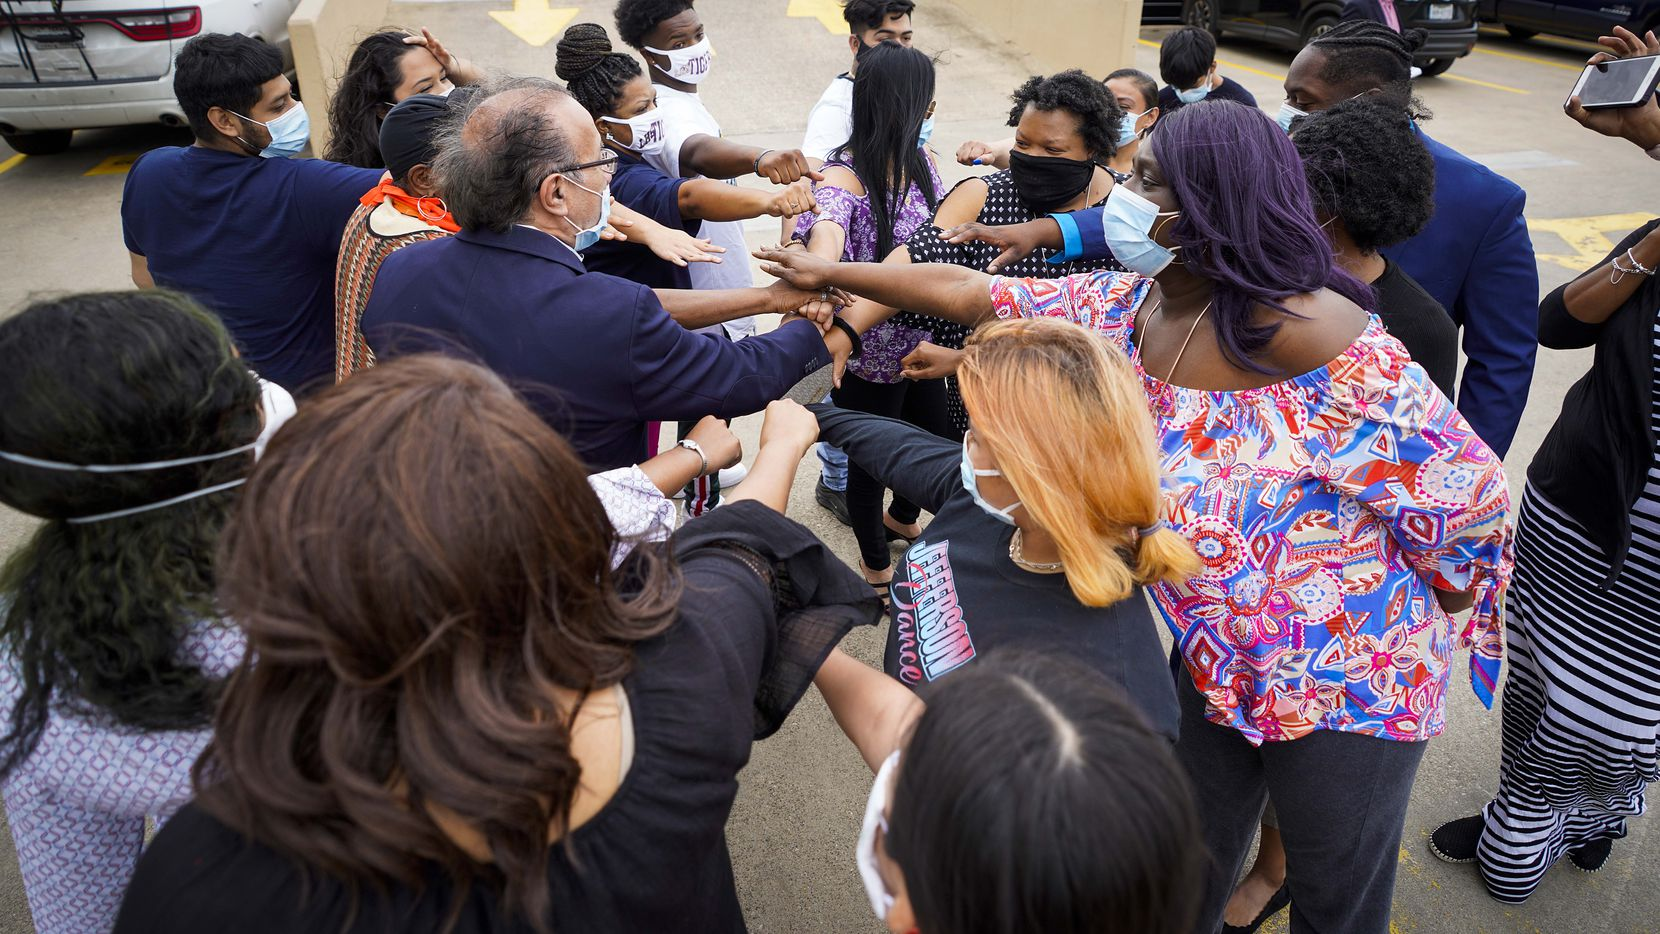 Students, parents and community organizers gather around activist Carlos Quintanilla as they huddle before addressing media outside the Dallas ISD administration building on Tuesday, May 12, 2020, in Dallas.  The protesters want DISD to backtrack on virtual graduations and hold in-person events instead.